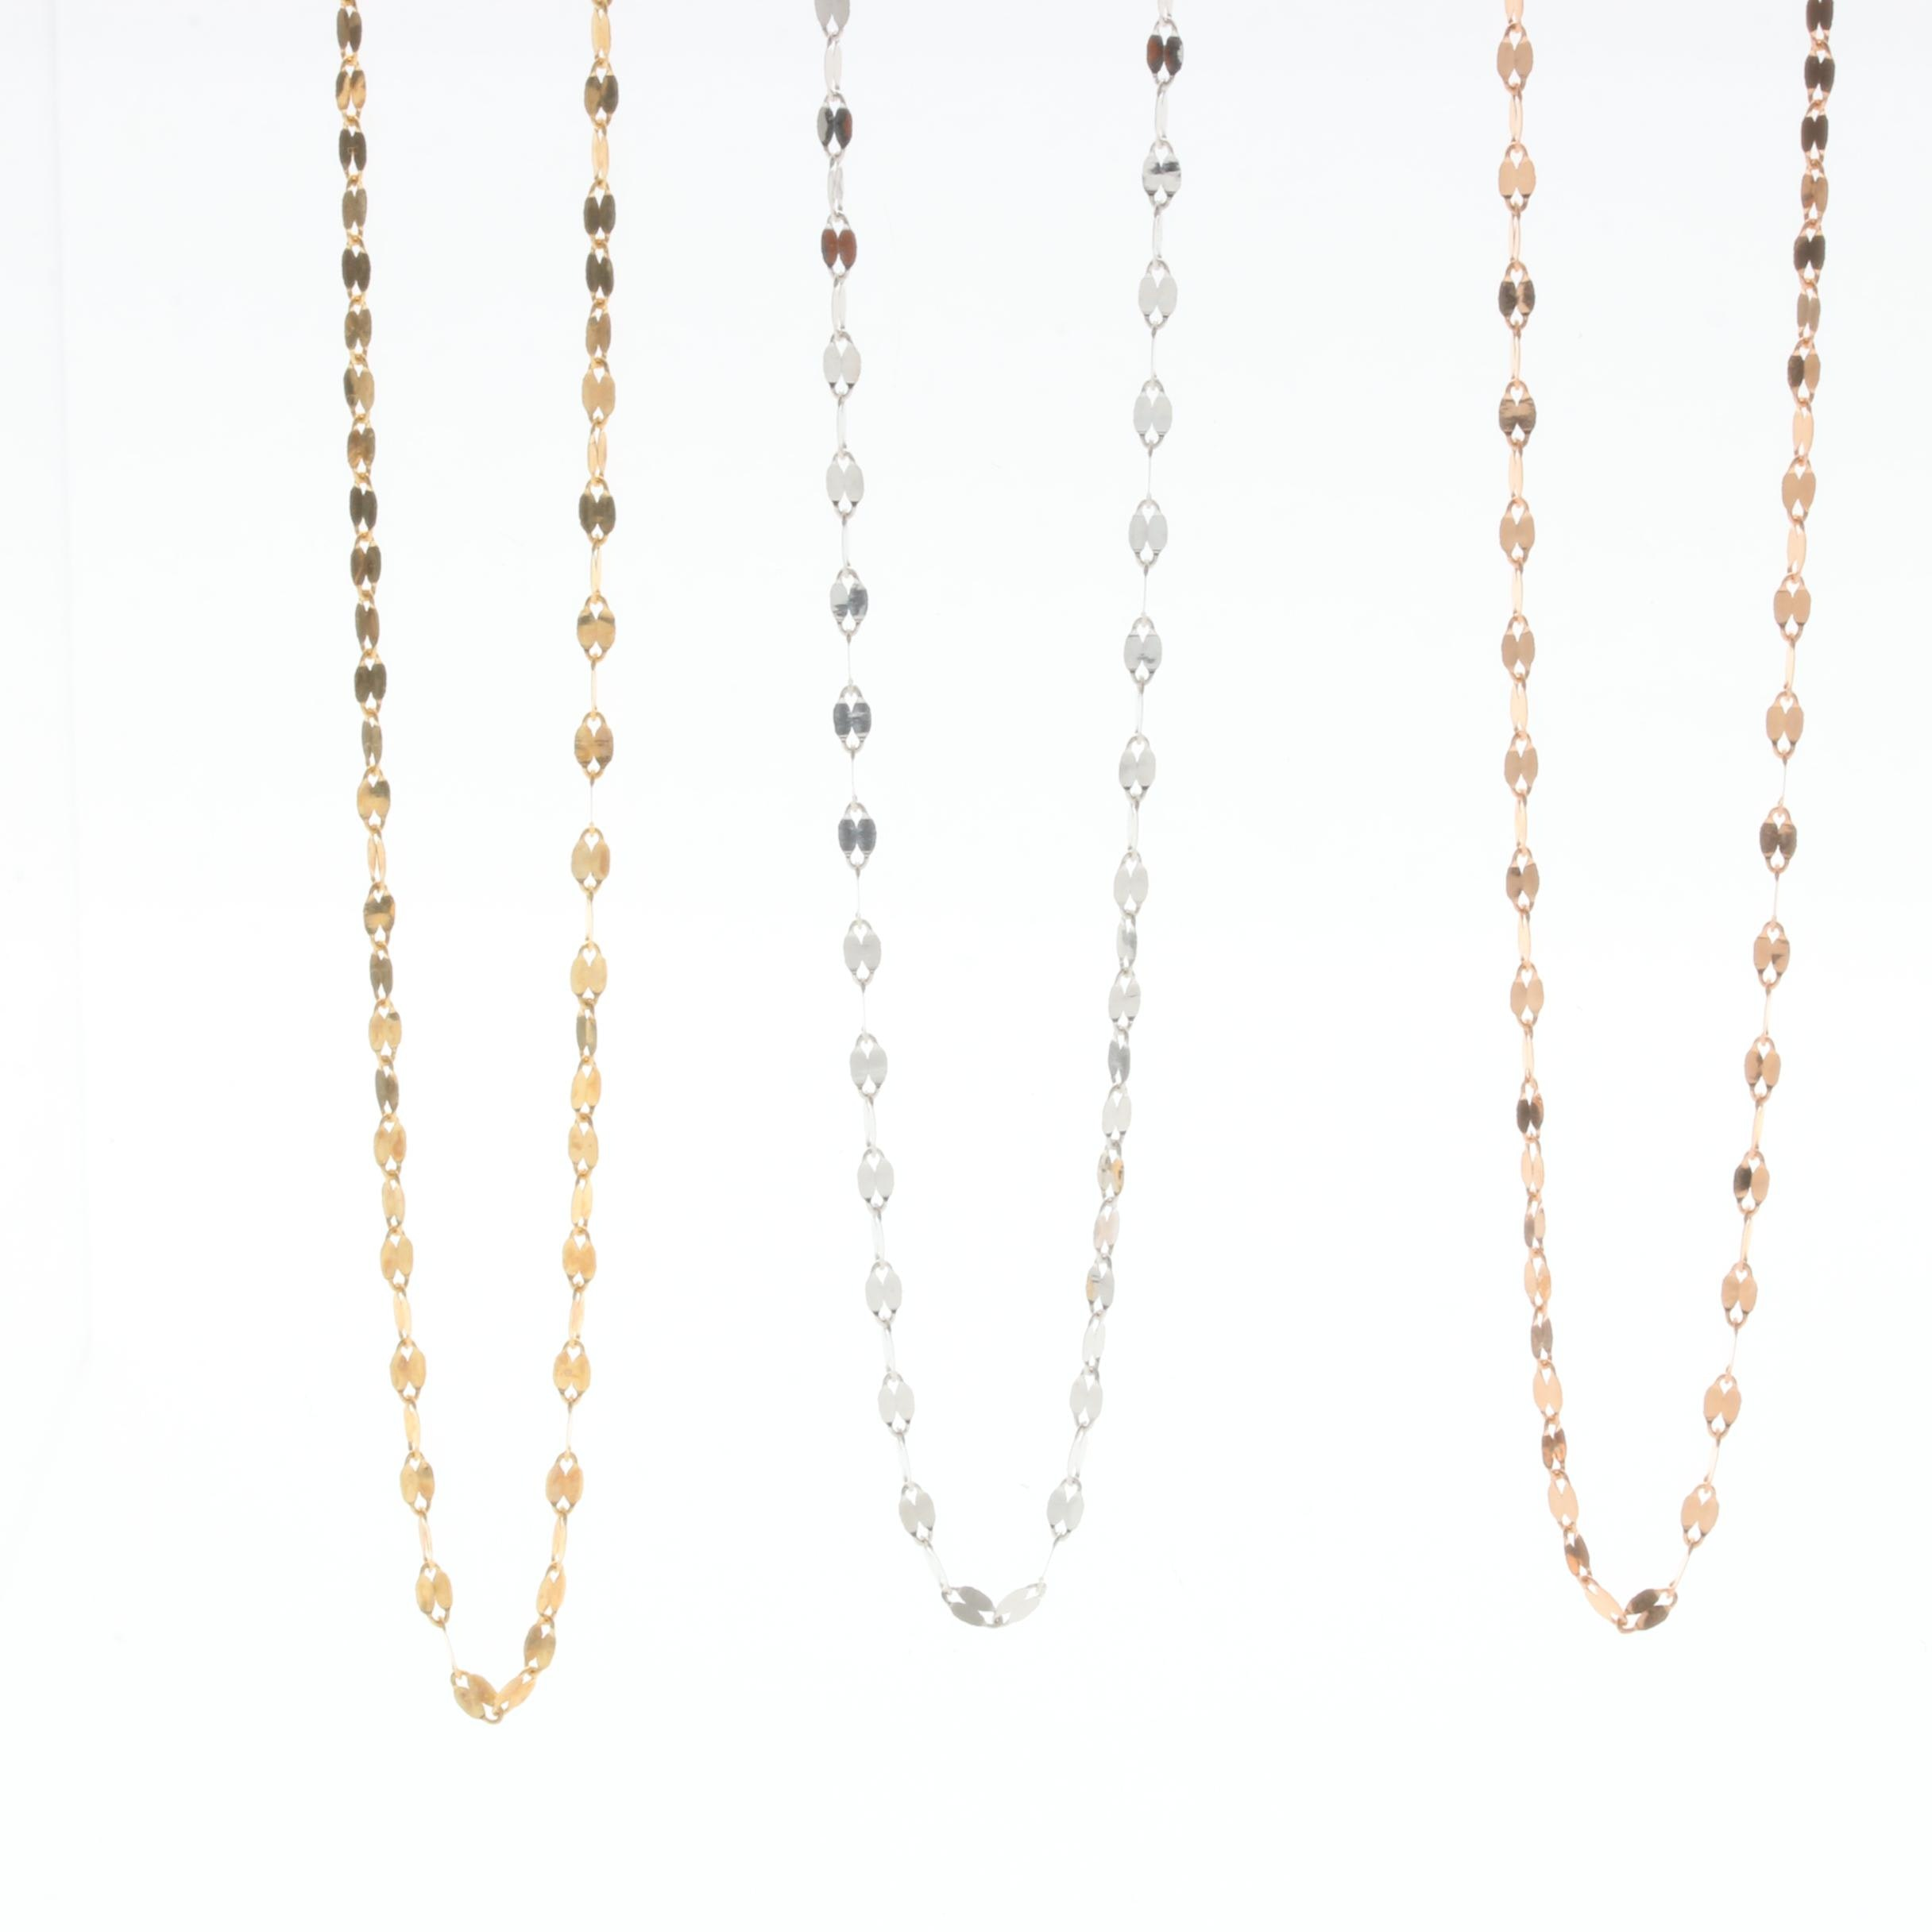 10K Yellow, White and Rose Gold Necklaces